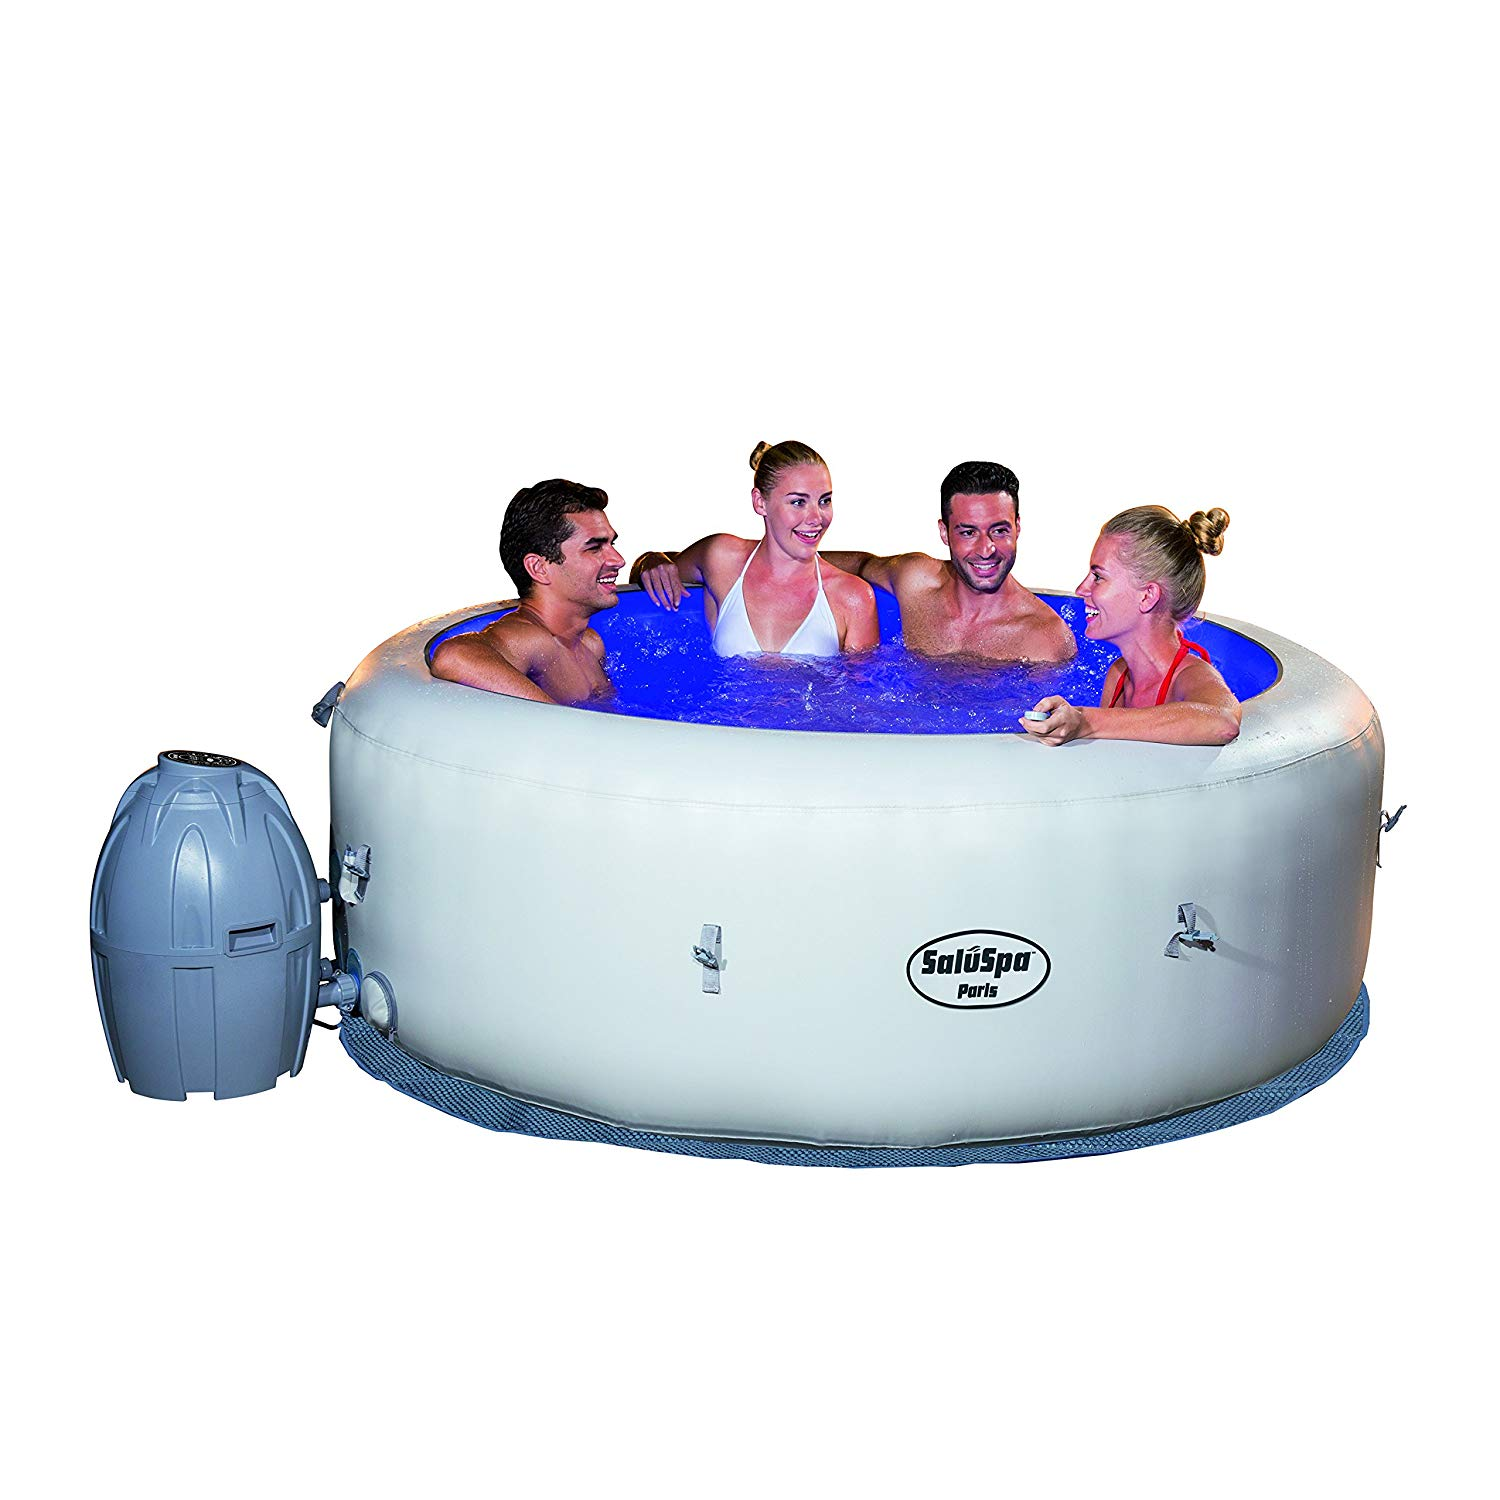 Bestway Lay Z Spa Paris Inflatable Hot